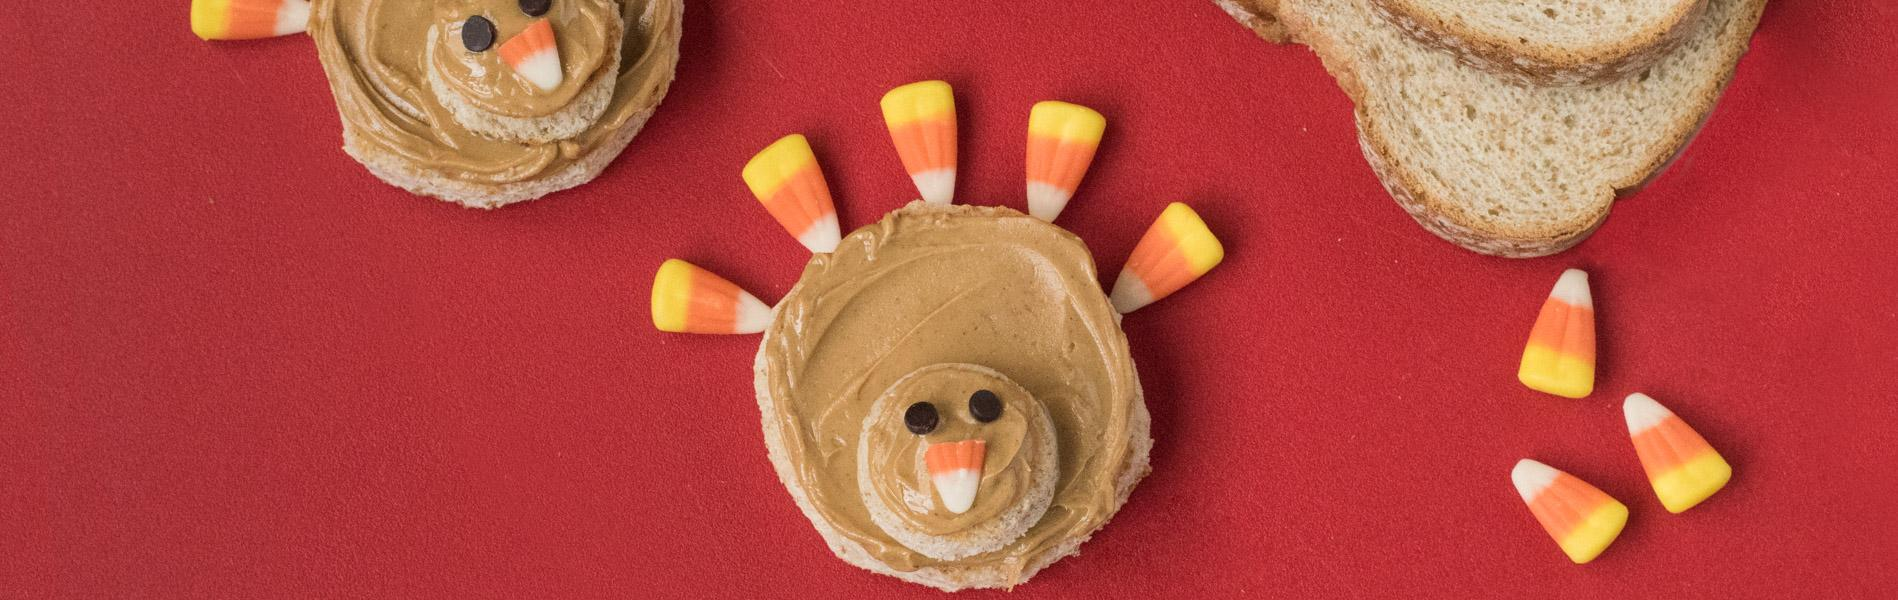 Turkey shaped, Peanut butter on a circular sandwich with candy corn to make a